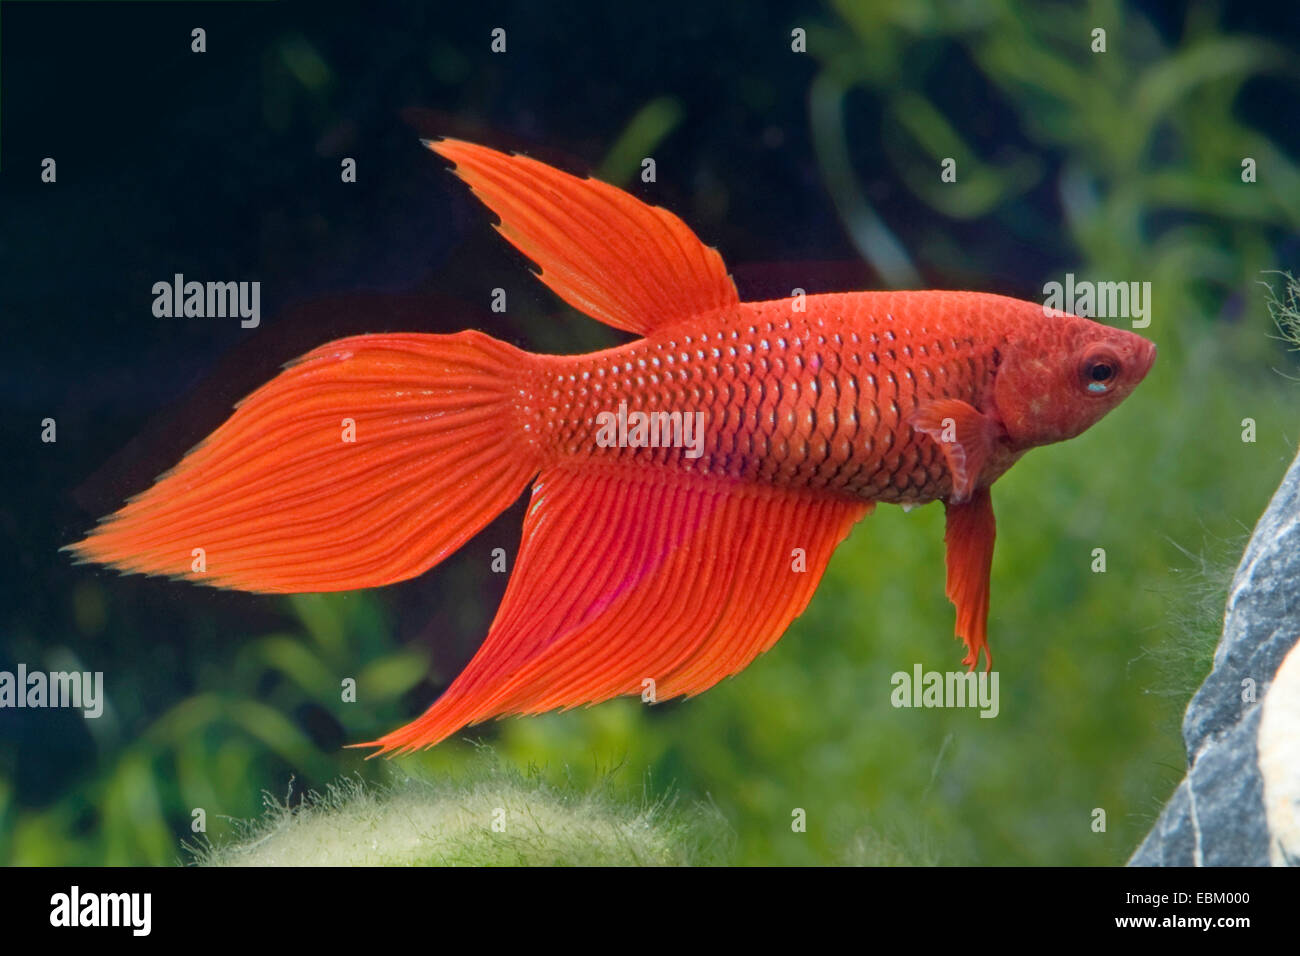 Siamese fighting fish, Siamese fighter (Betta splendens), female of the breed Longtail red - Stock Image